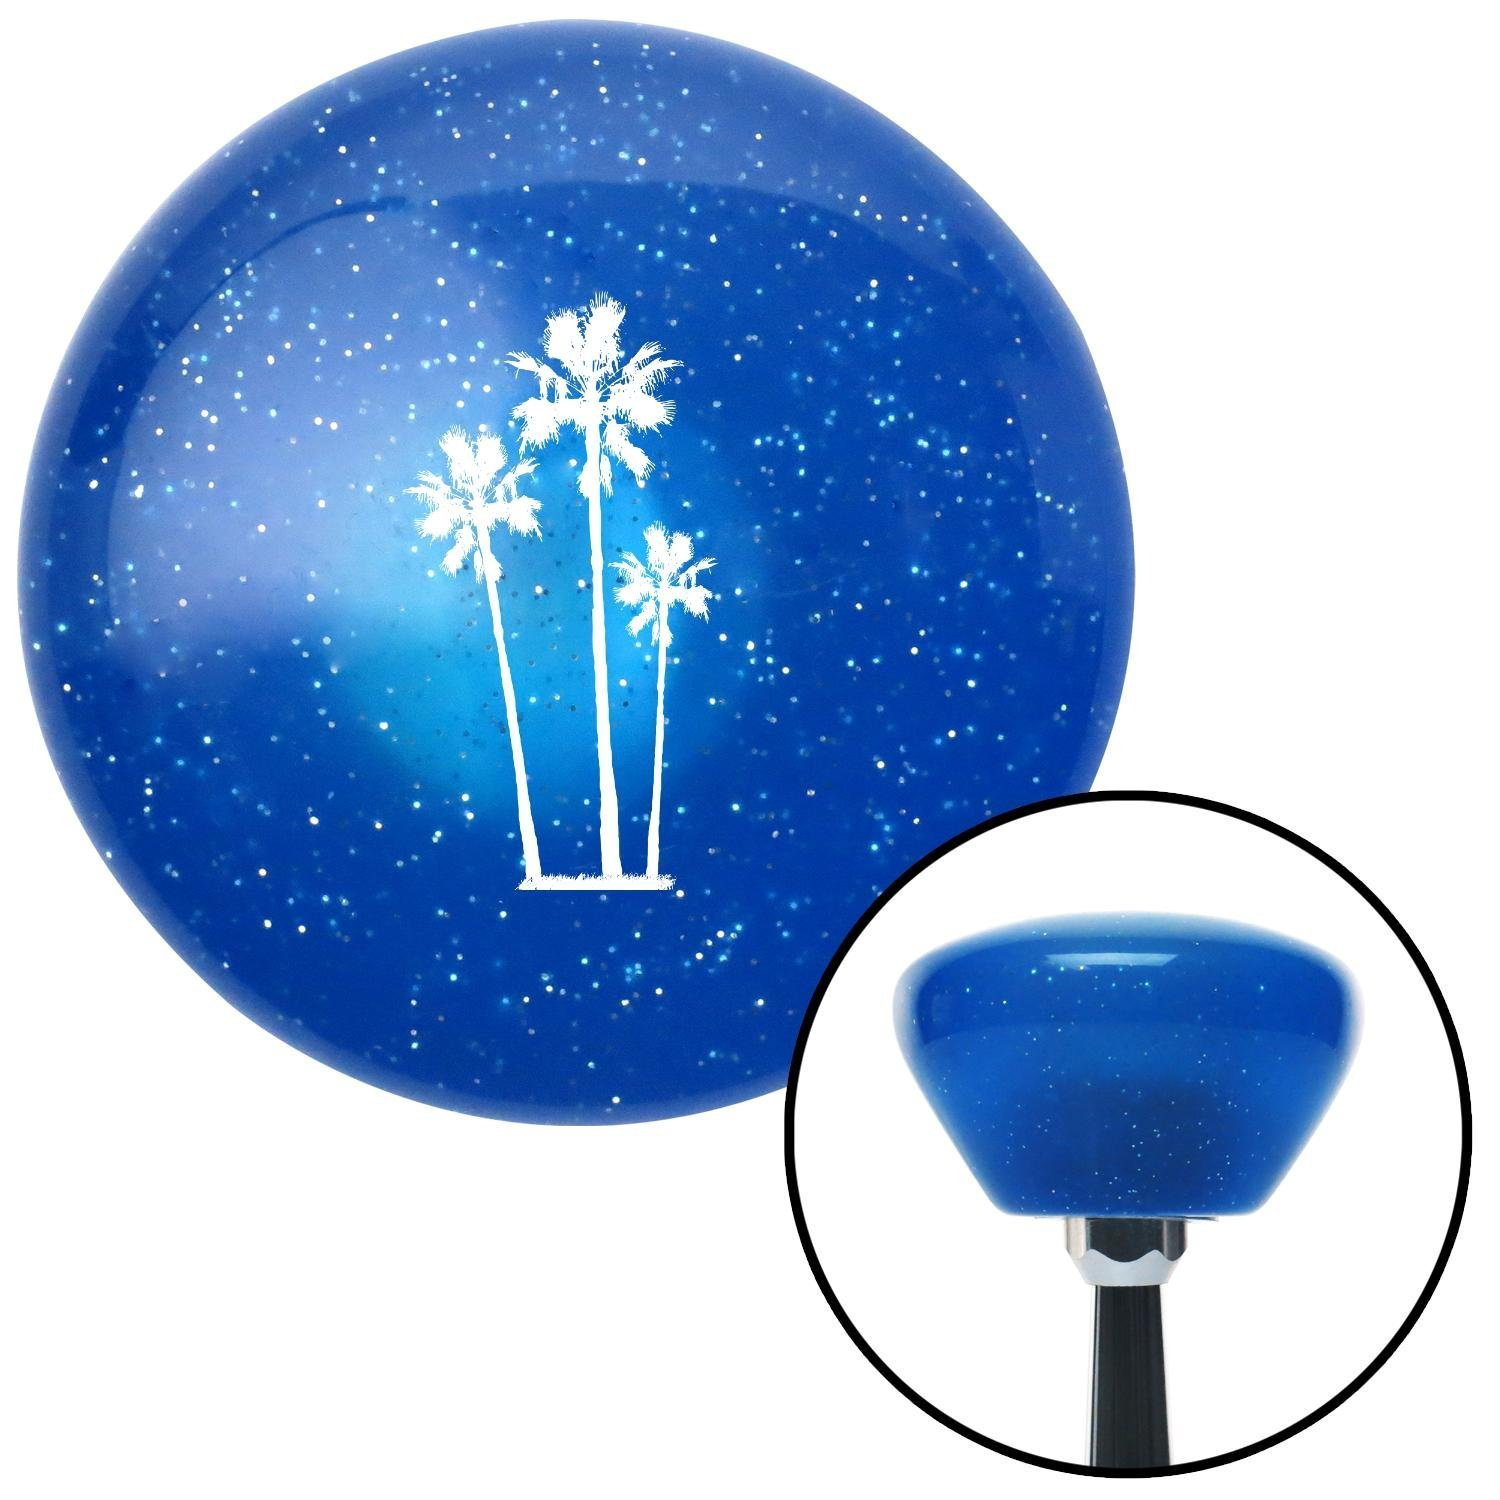 American Shifter 189809 Blue Retro Metal Flake Shift Knob with M16 x 1.5 Insert White Group of Palms